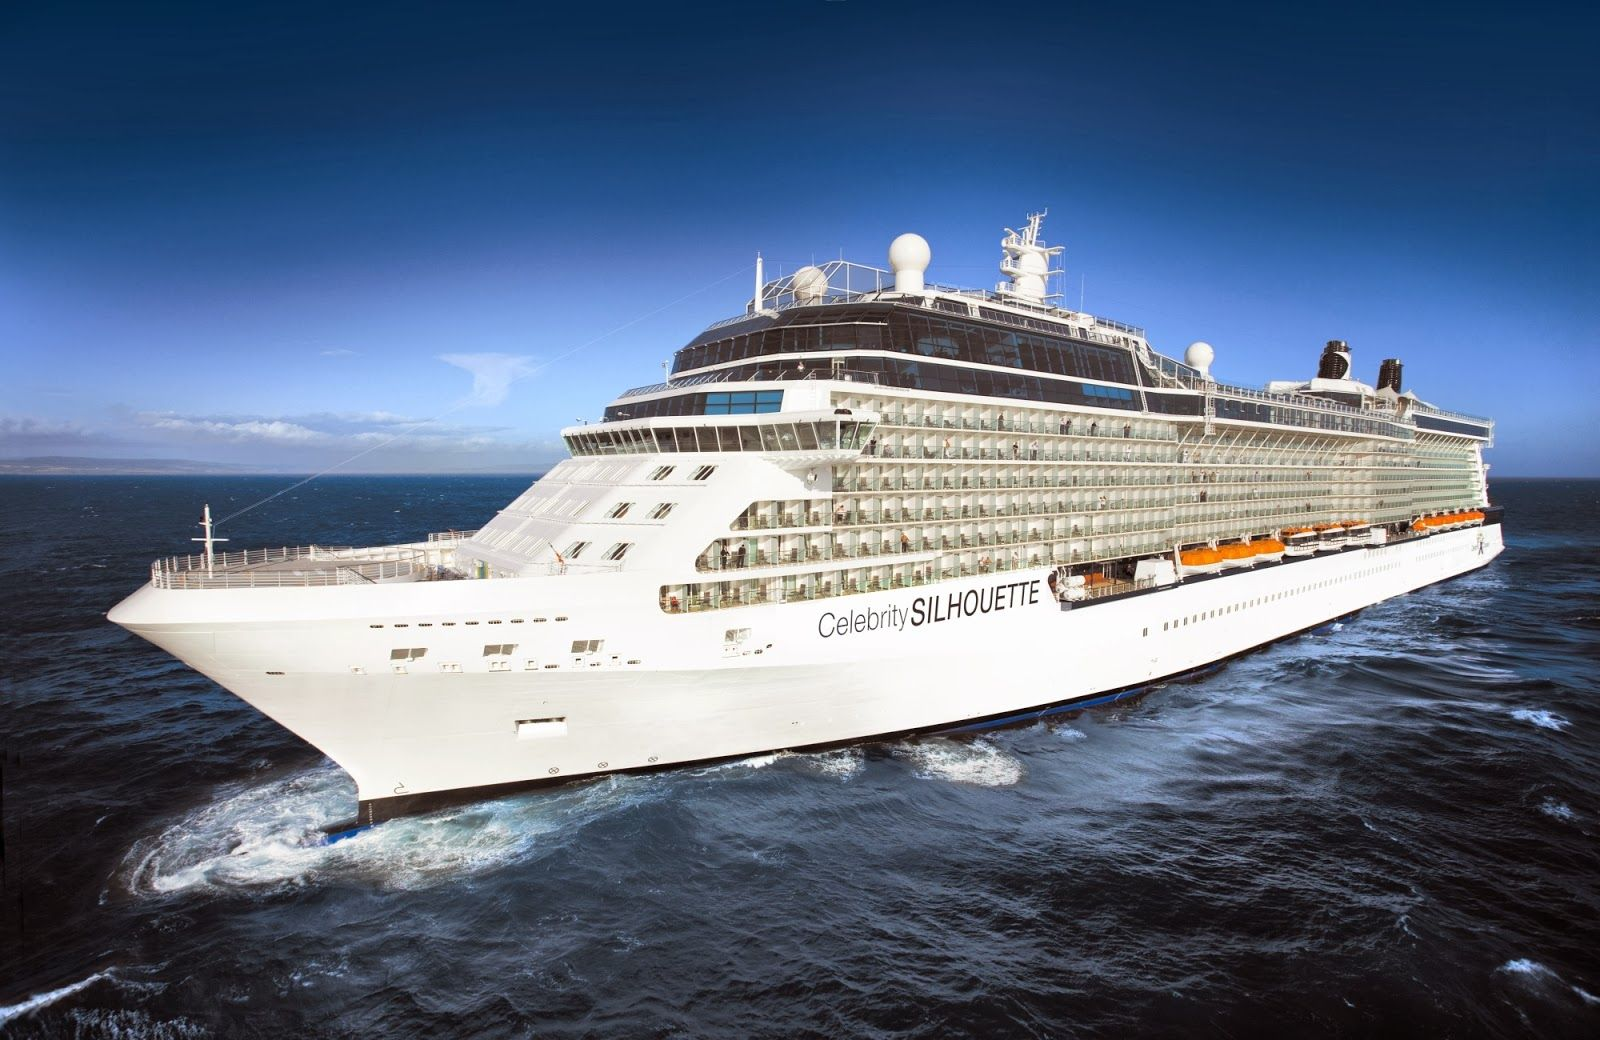 Celebrity Silhouette Current Position Dual Tracking Best Cruise Ships Best Cruise Princess Cruise Lines